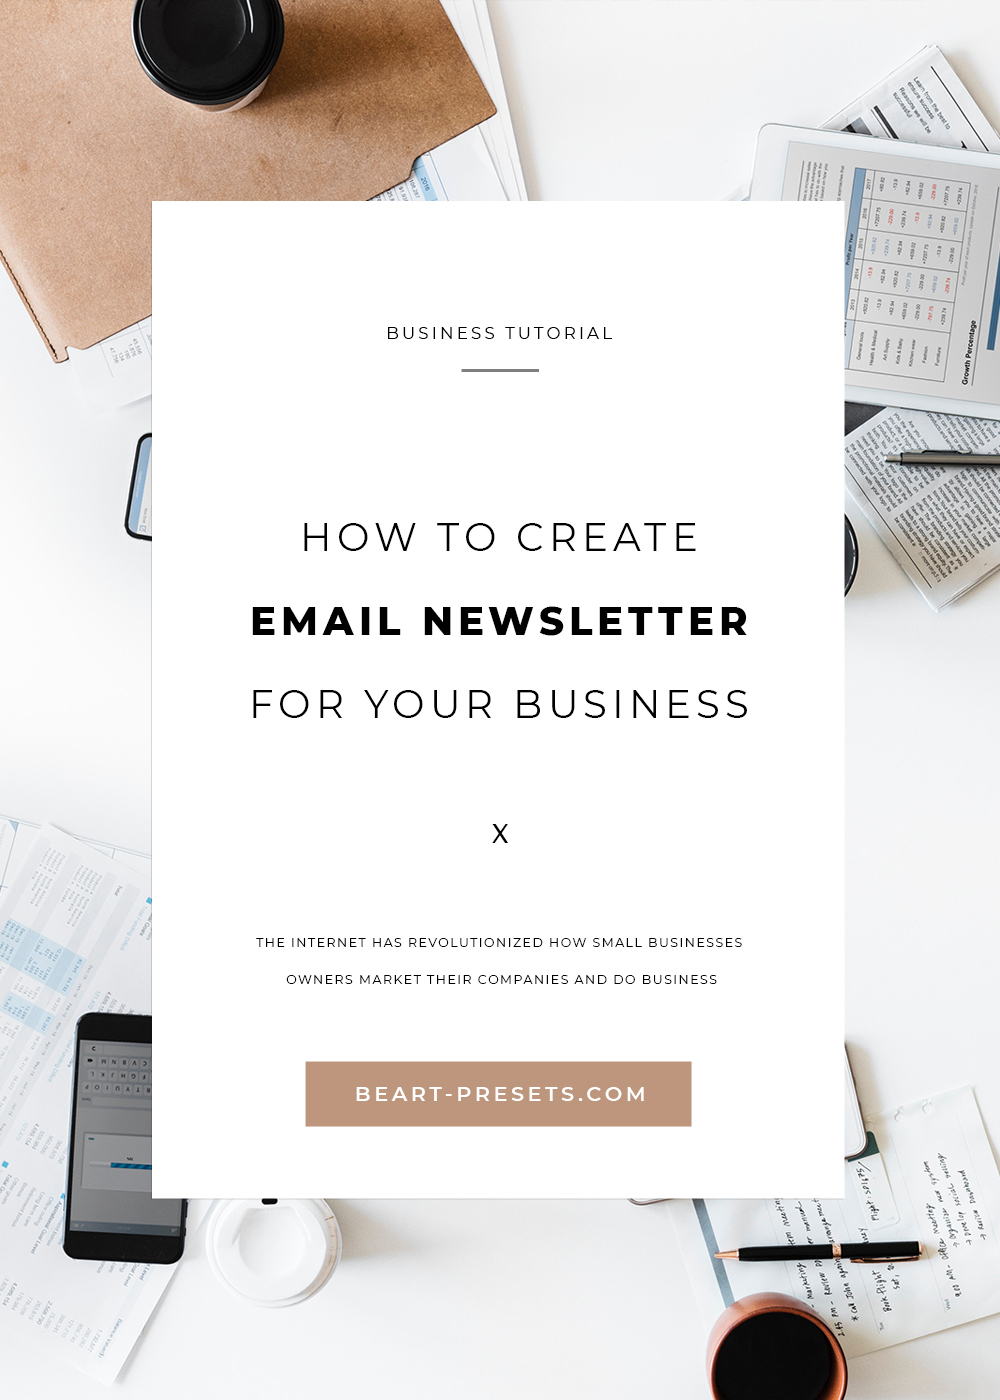 CREATE EMAIL NEWSLETTER FOR YOUR BUSINESS